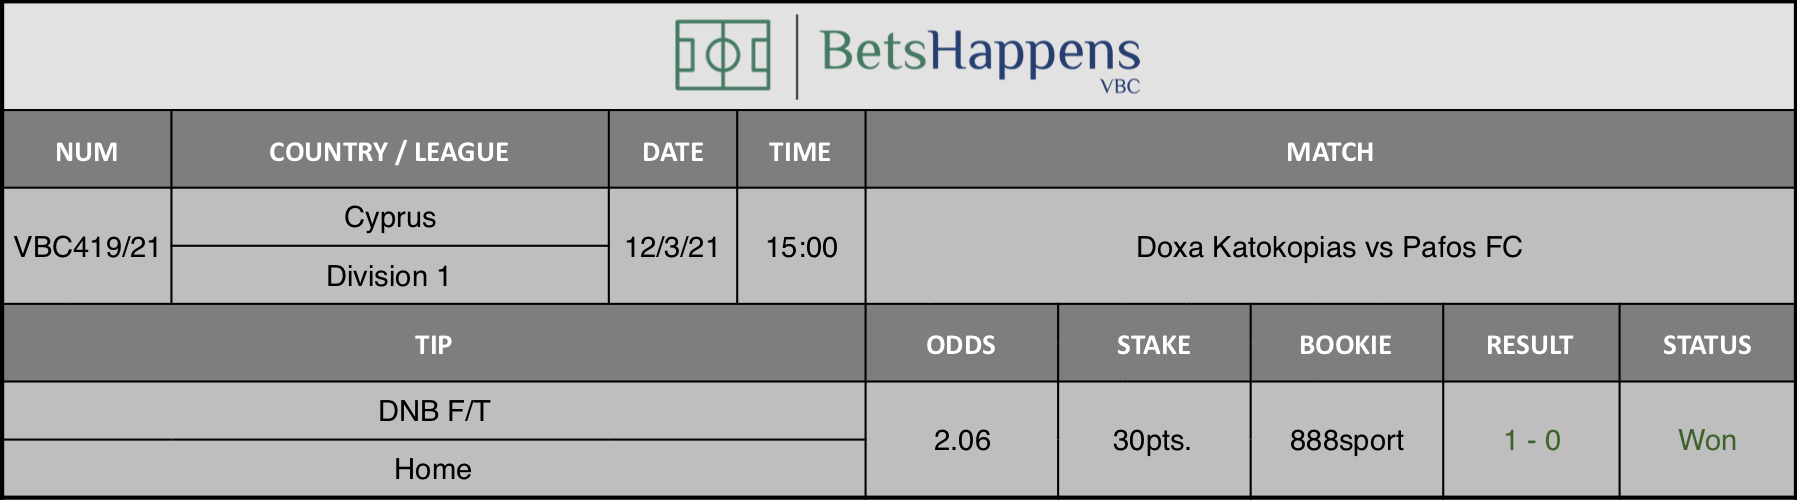 Results of our tip for the Doxa Katokopias vs Pafos FC match where DNB F/T Home is recommended.